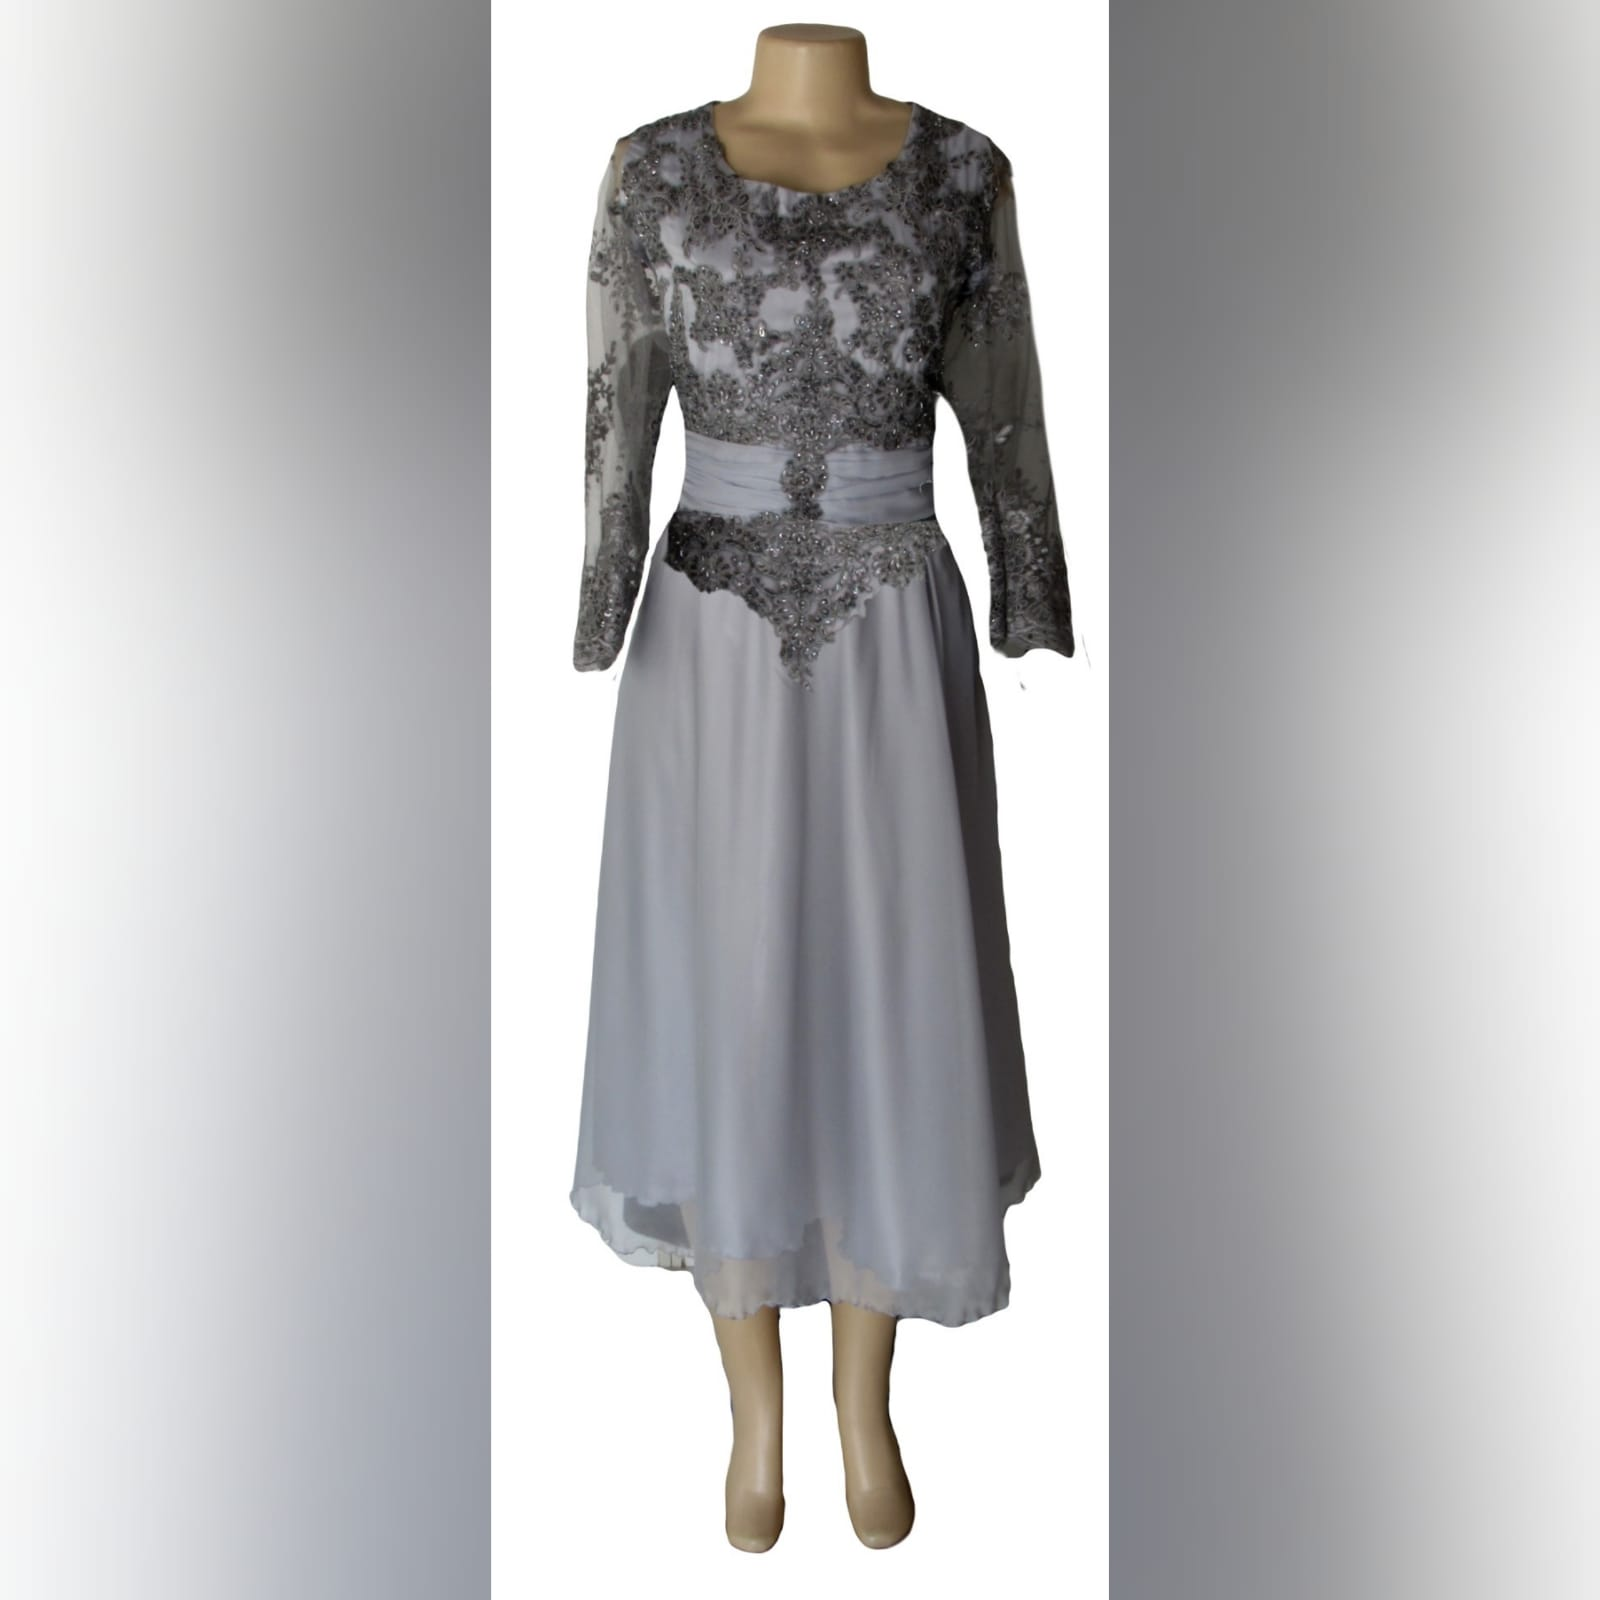 Grey knee length mother of the bride dress 6 grey knee length mother of the bride dress detailed with a ruched belt and lace on the bodice and sleeves.